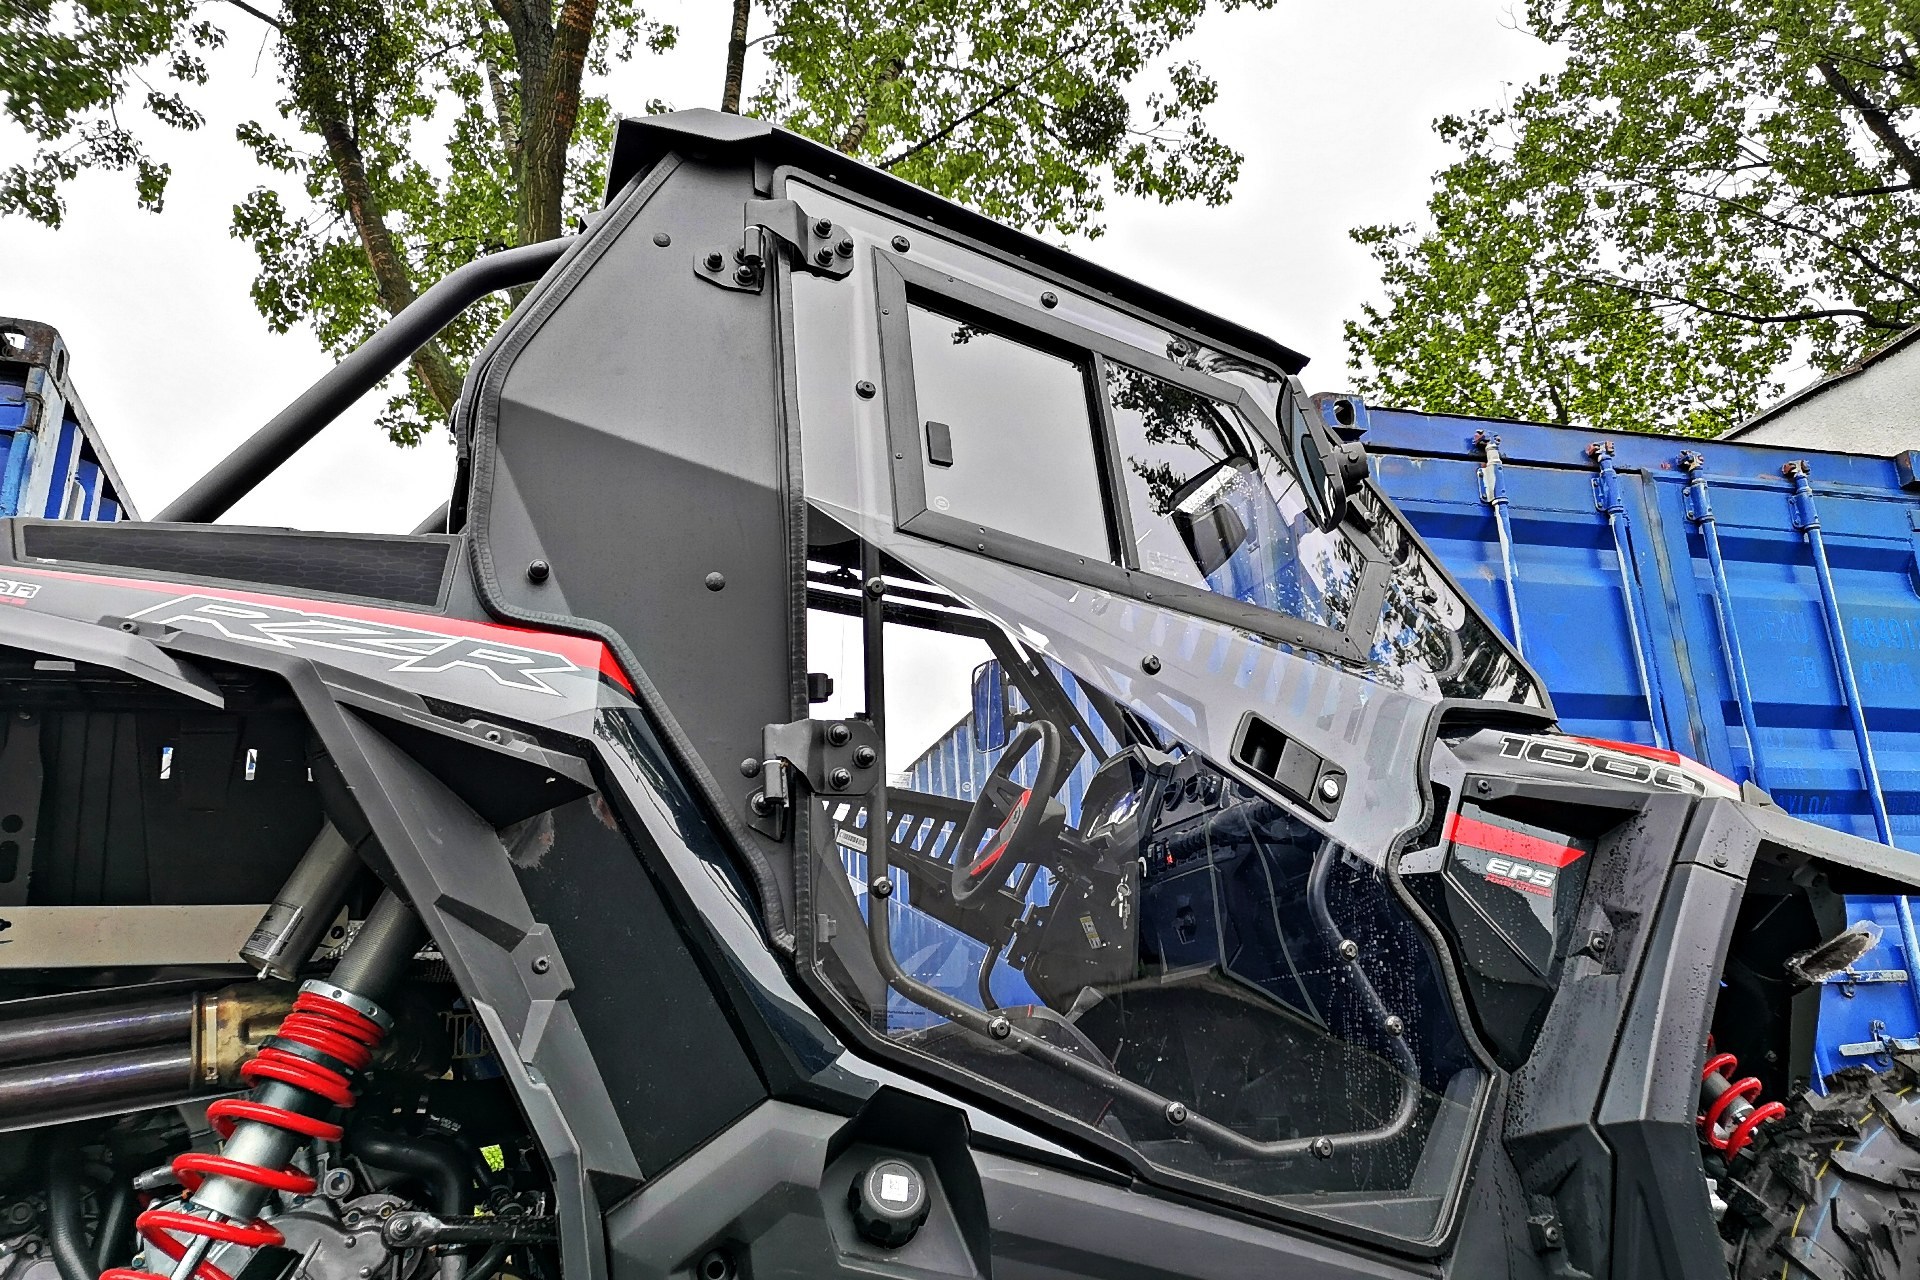 Doors (left + right) for Polaris RZR 1000 / Turbo 2019-2021